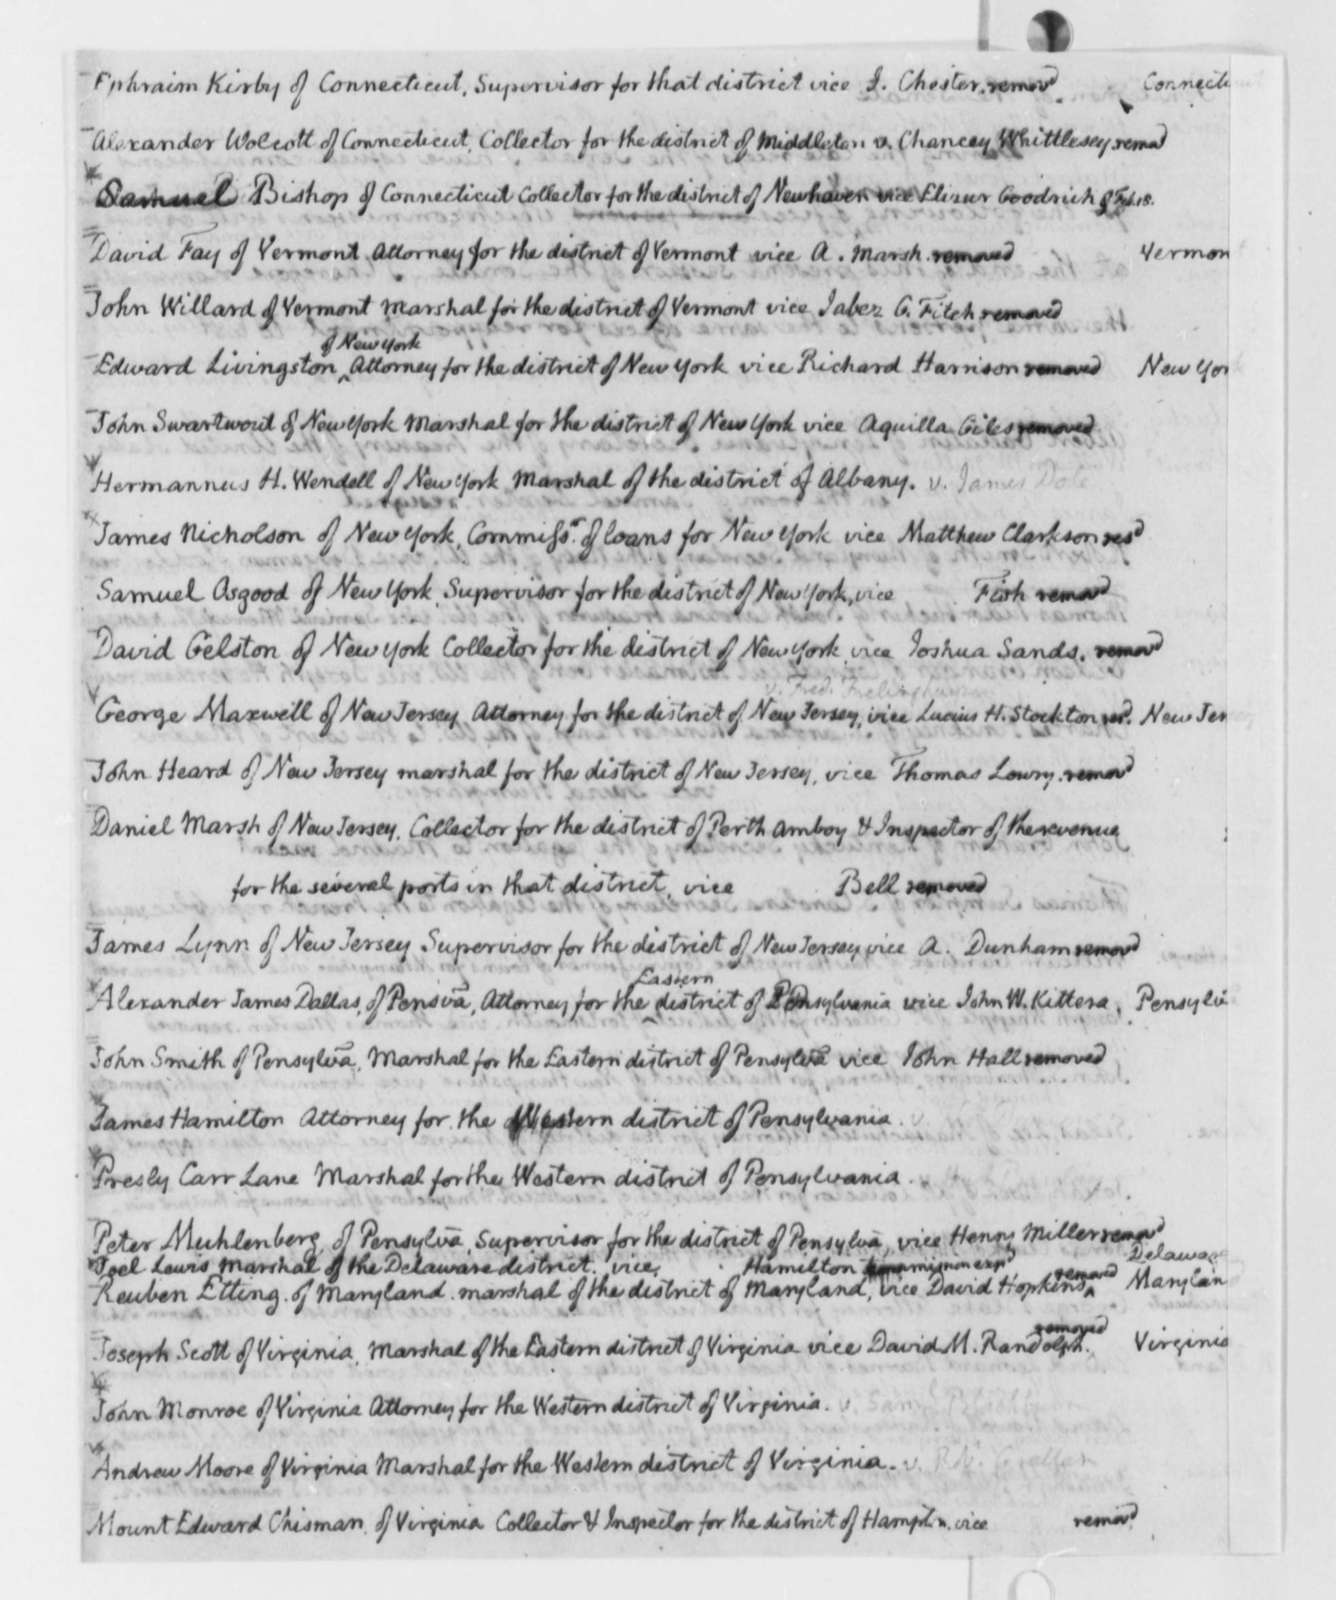 Thomas Jefferson to Senate, January 6, 1802, with Copies